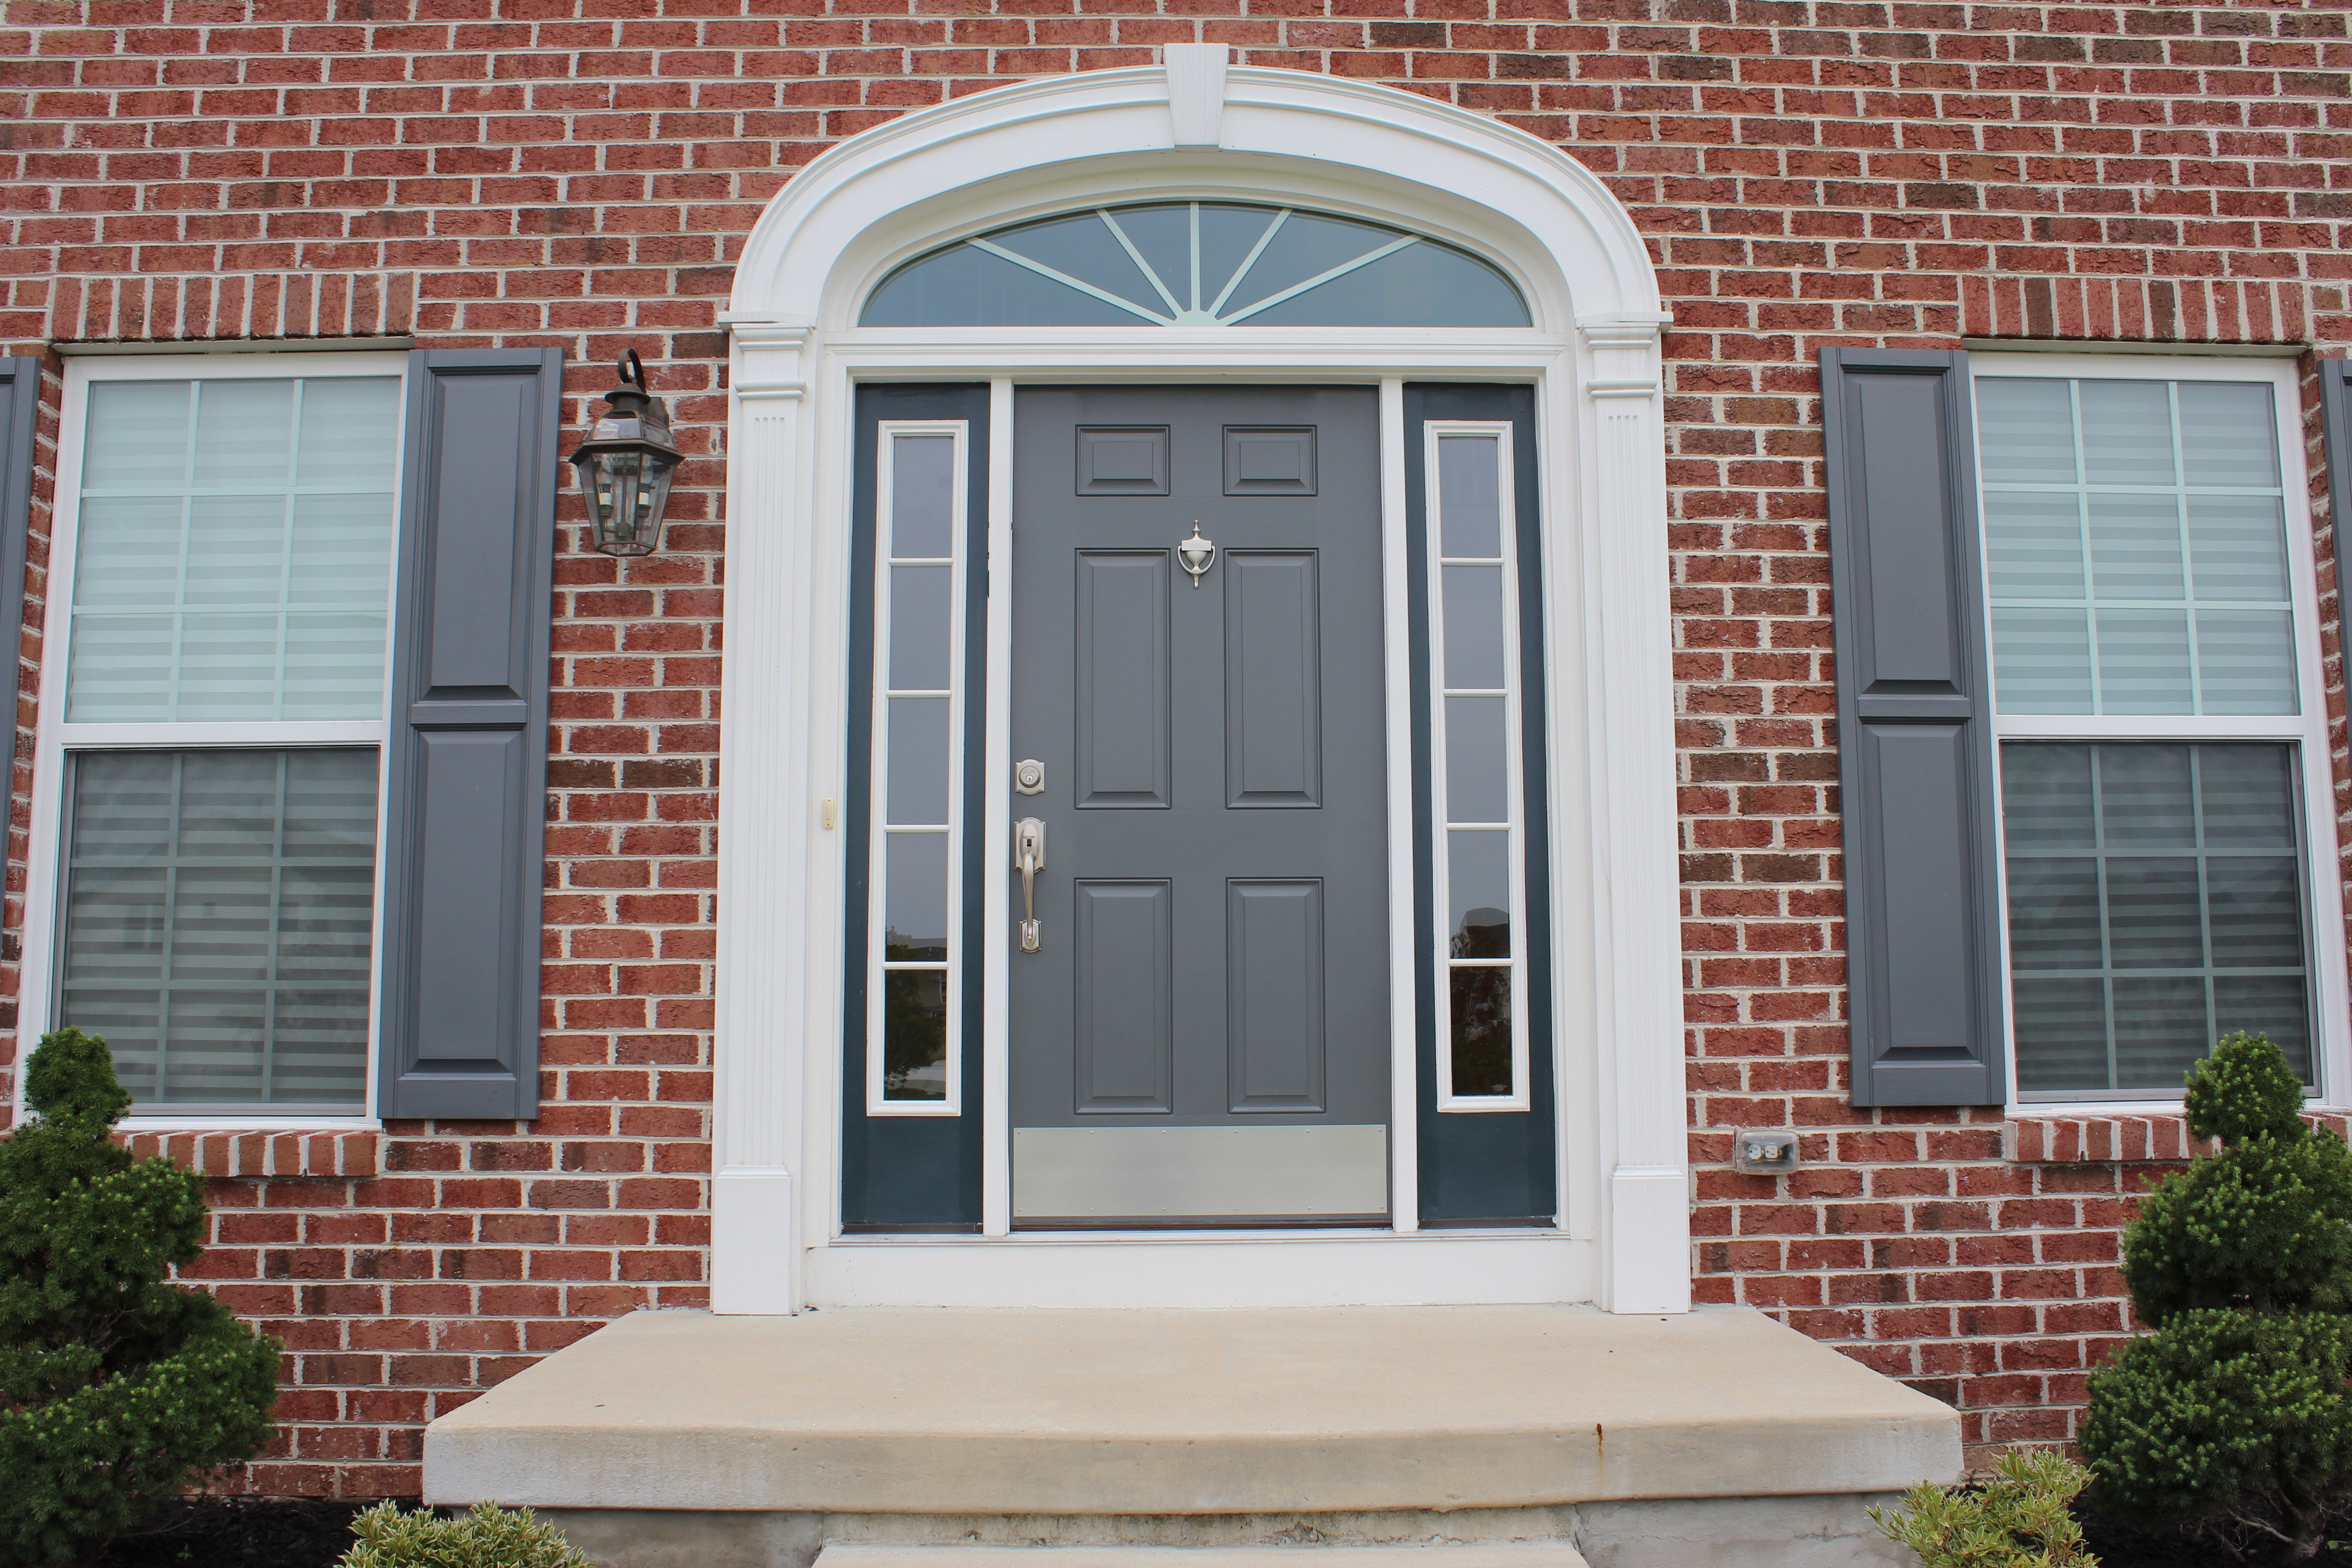 3456 #79433A Front Door Finished 1 picture/photo Painted Front Doors With Sidelights 41895184